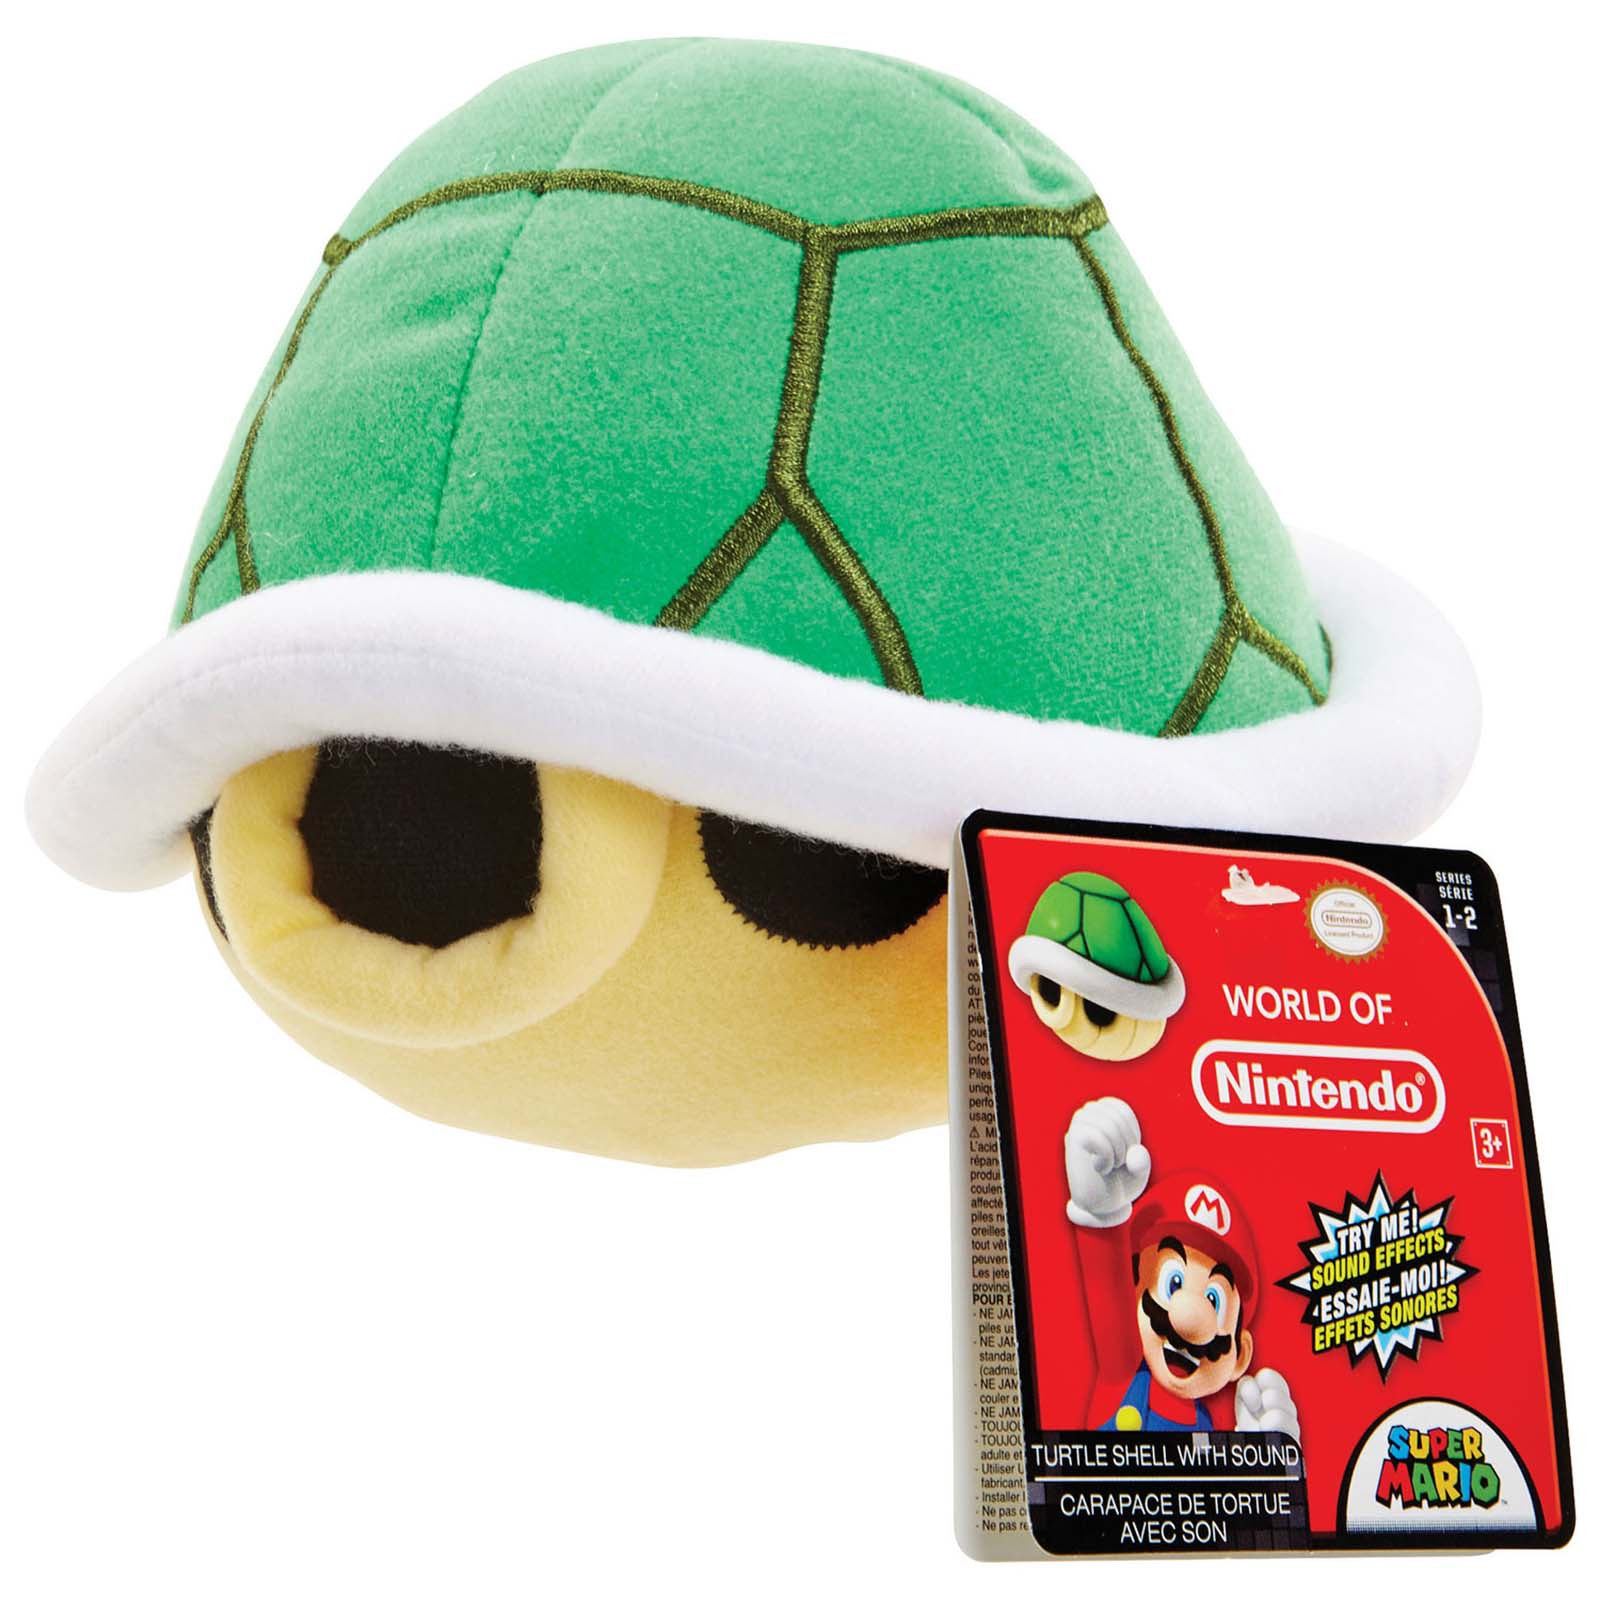 World Of Nintendo Super Mario Turtle Shell With Sound 8 Inch Plush Figure